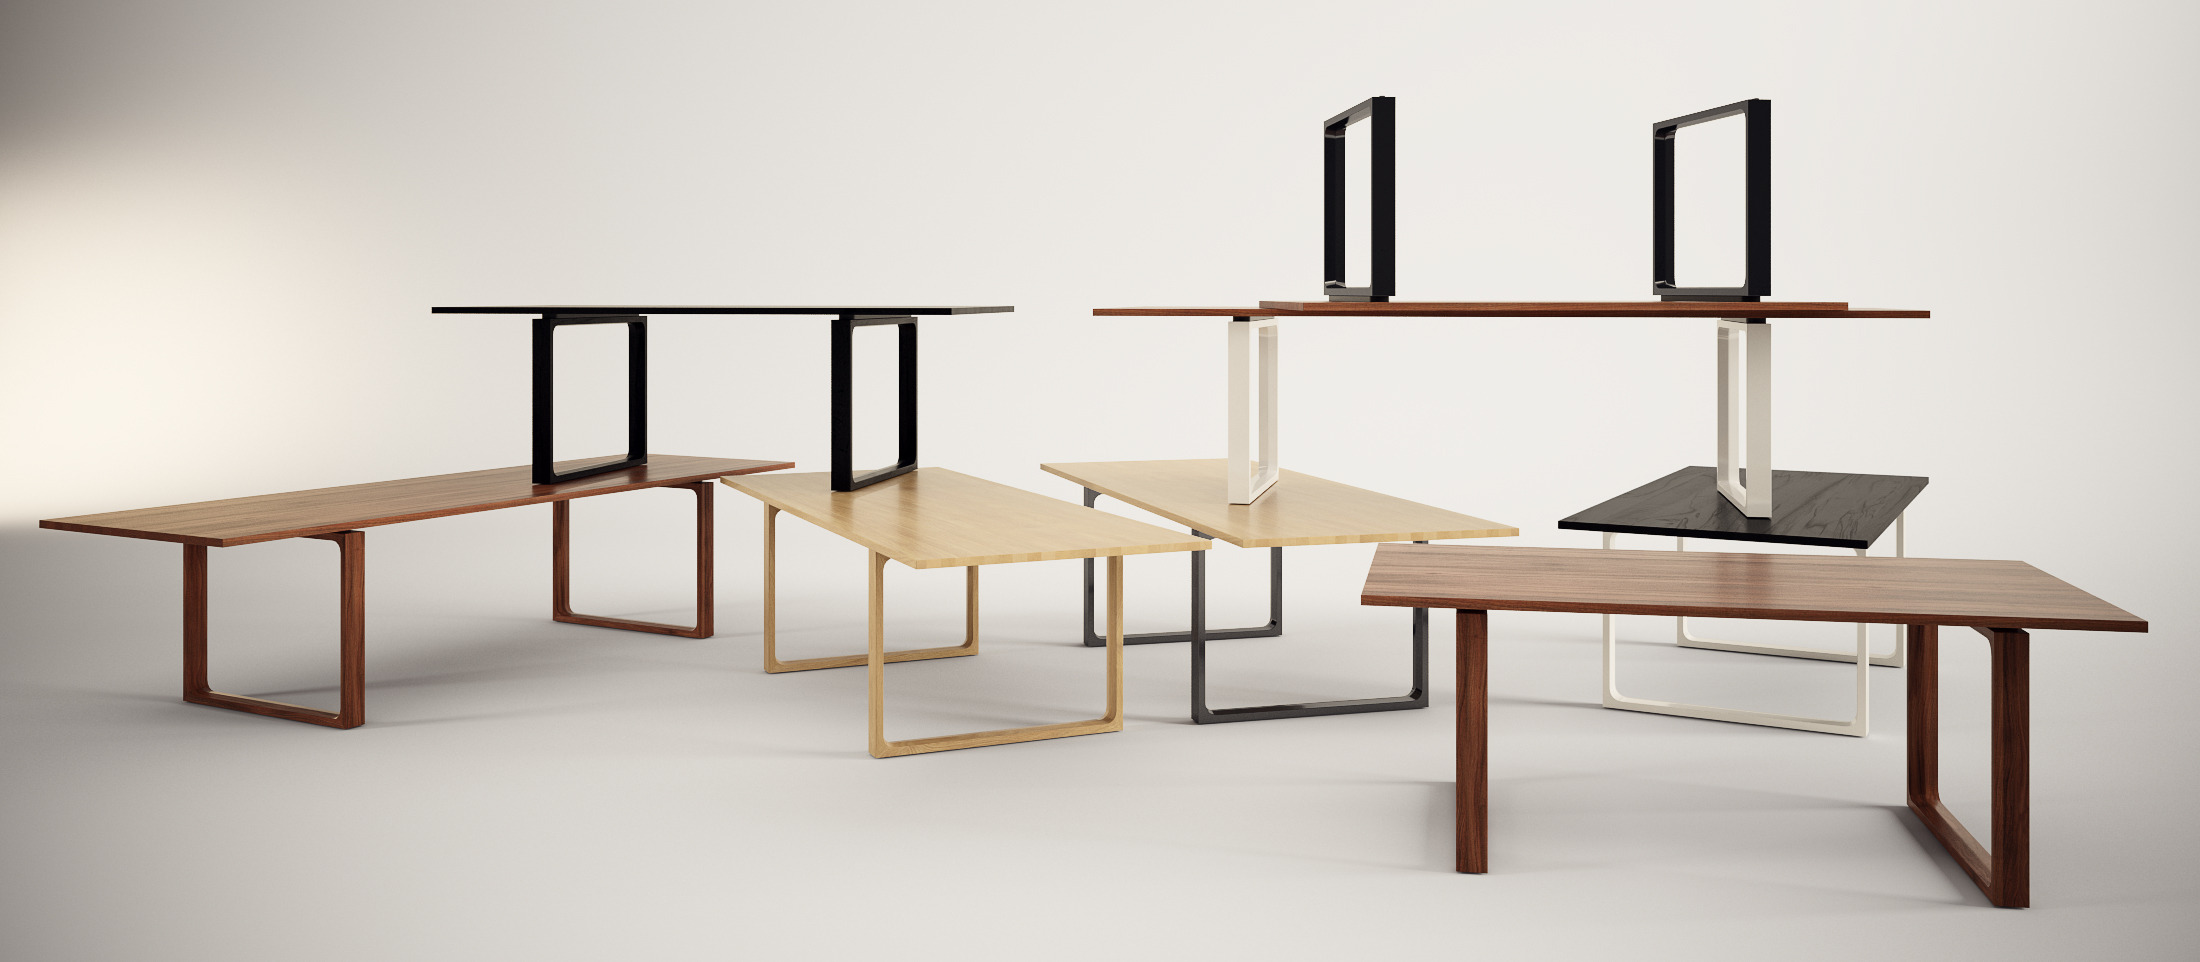 fritz hansen essay table price Essay is a table designed by cecilie manz for fritz hansen the essay table by fritz hansen combines quality, honesty, and thoughtful design without any extra bells.